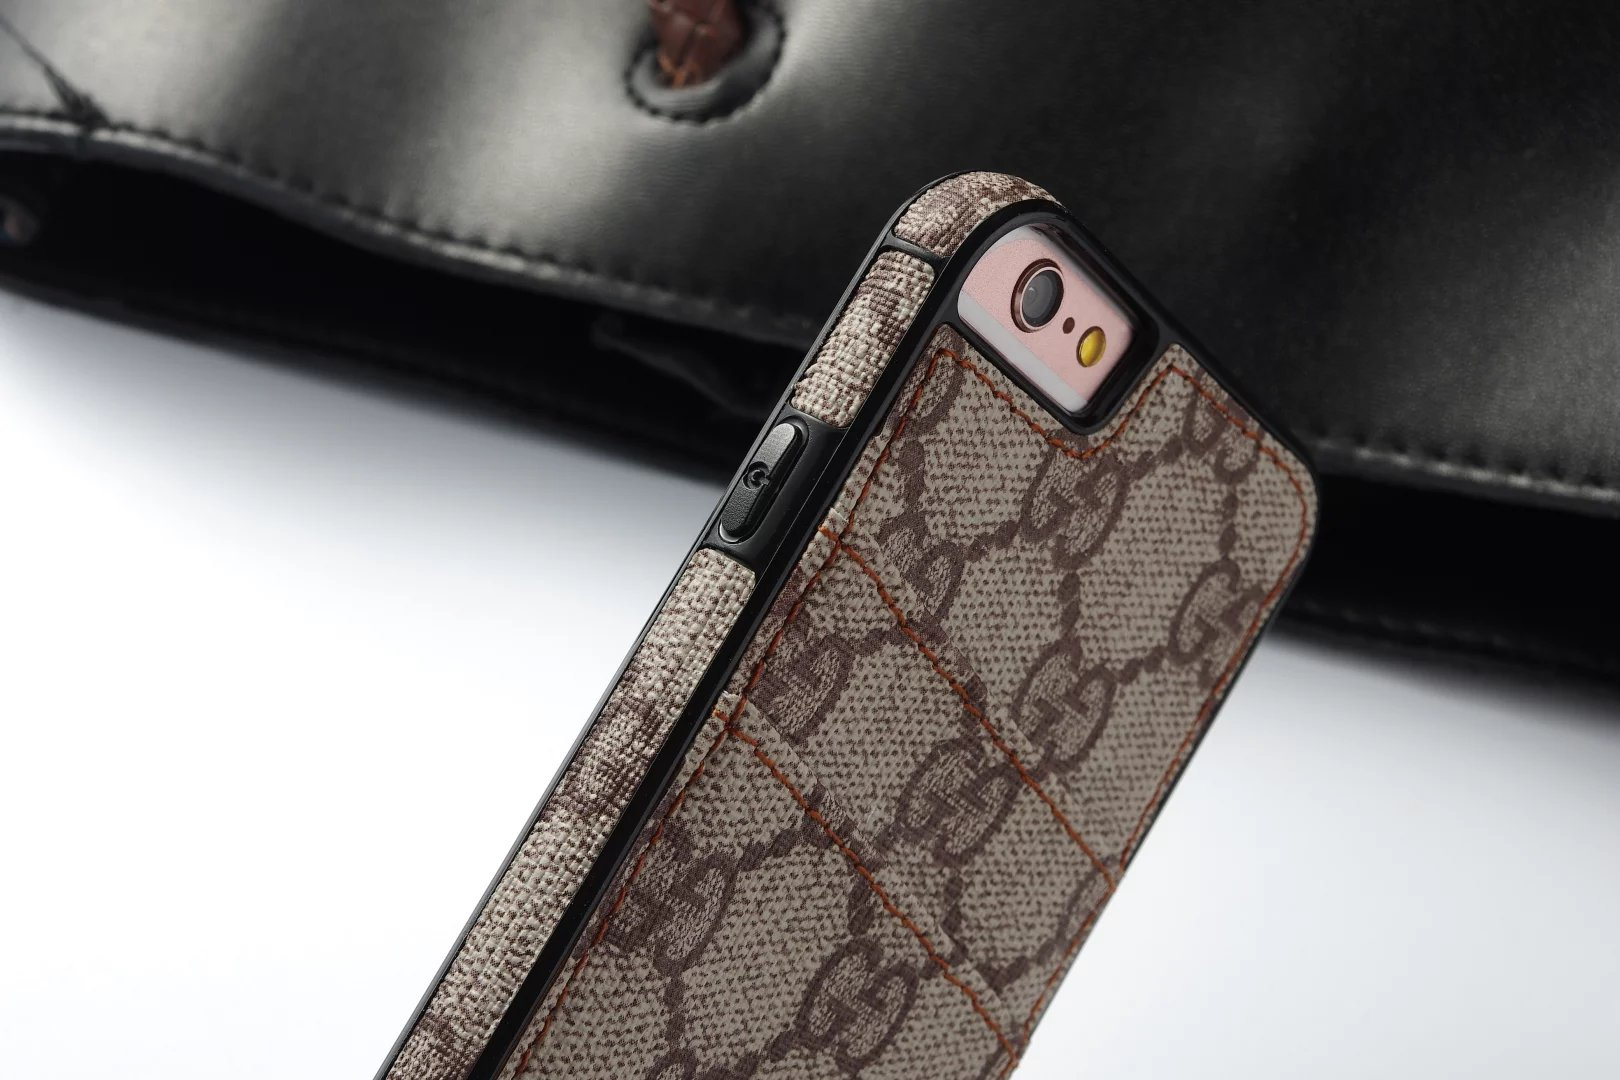 original iphone hülle iphone hülle selbst designen Louis Vuitton iphone6 plus hülle handyhülle iphone 6 Plus gold hochwertige iphone 6 Plus hüllen silikon cover iphone 6 Plus hülle rot wo kann man handyhüllen 6lbst gestalten handy cover design